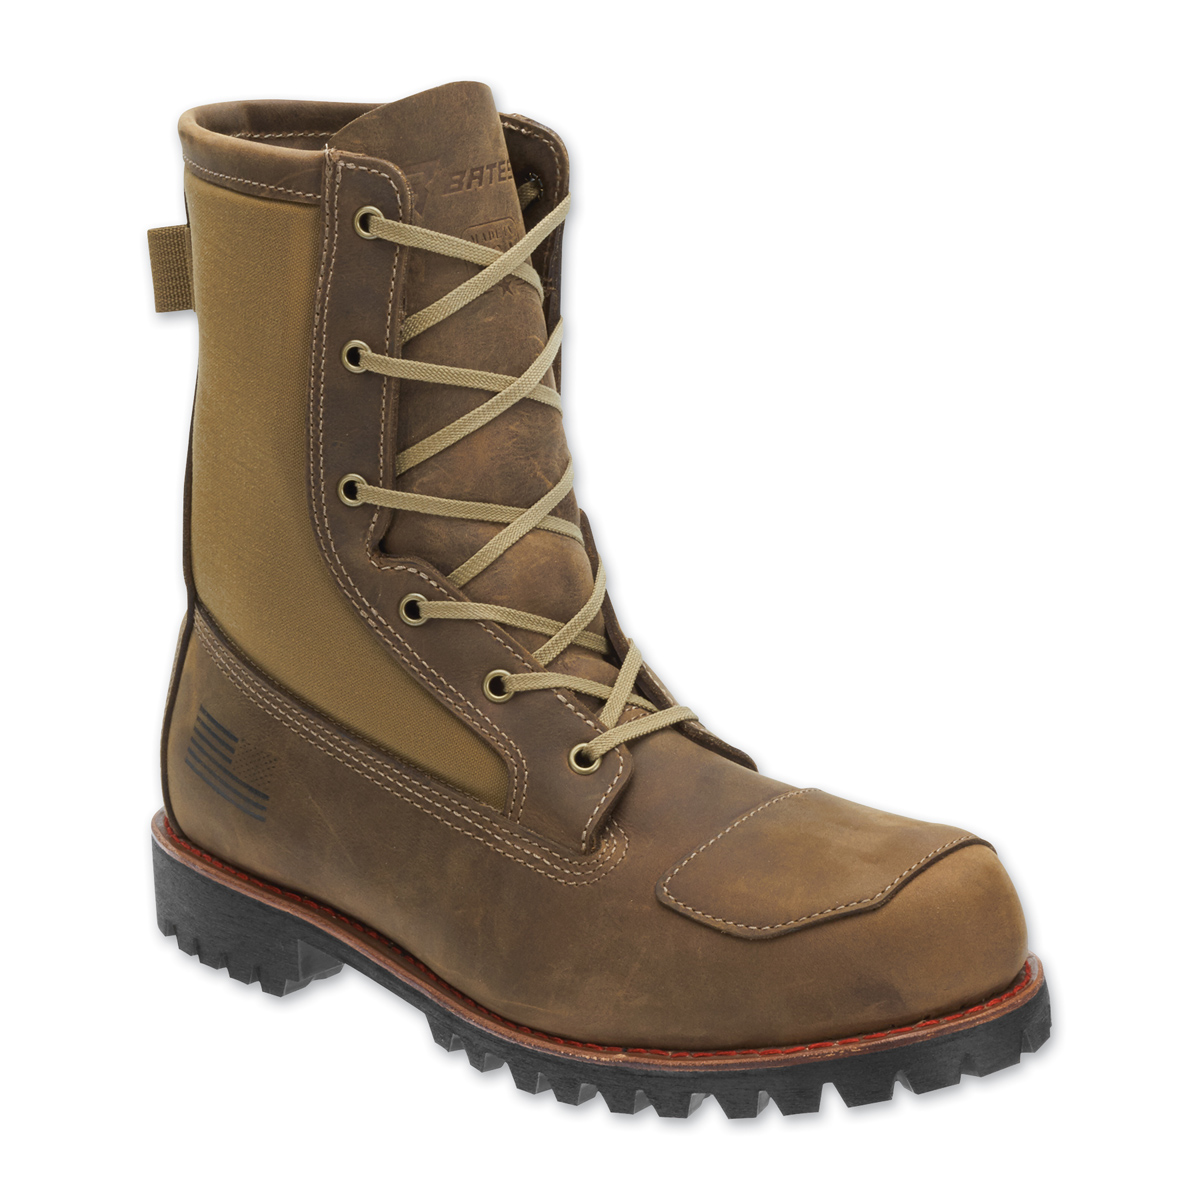 Bates Men's Bomber Brown Leather Boots